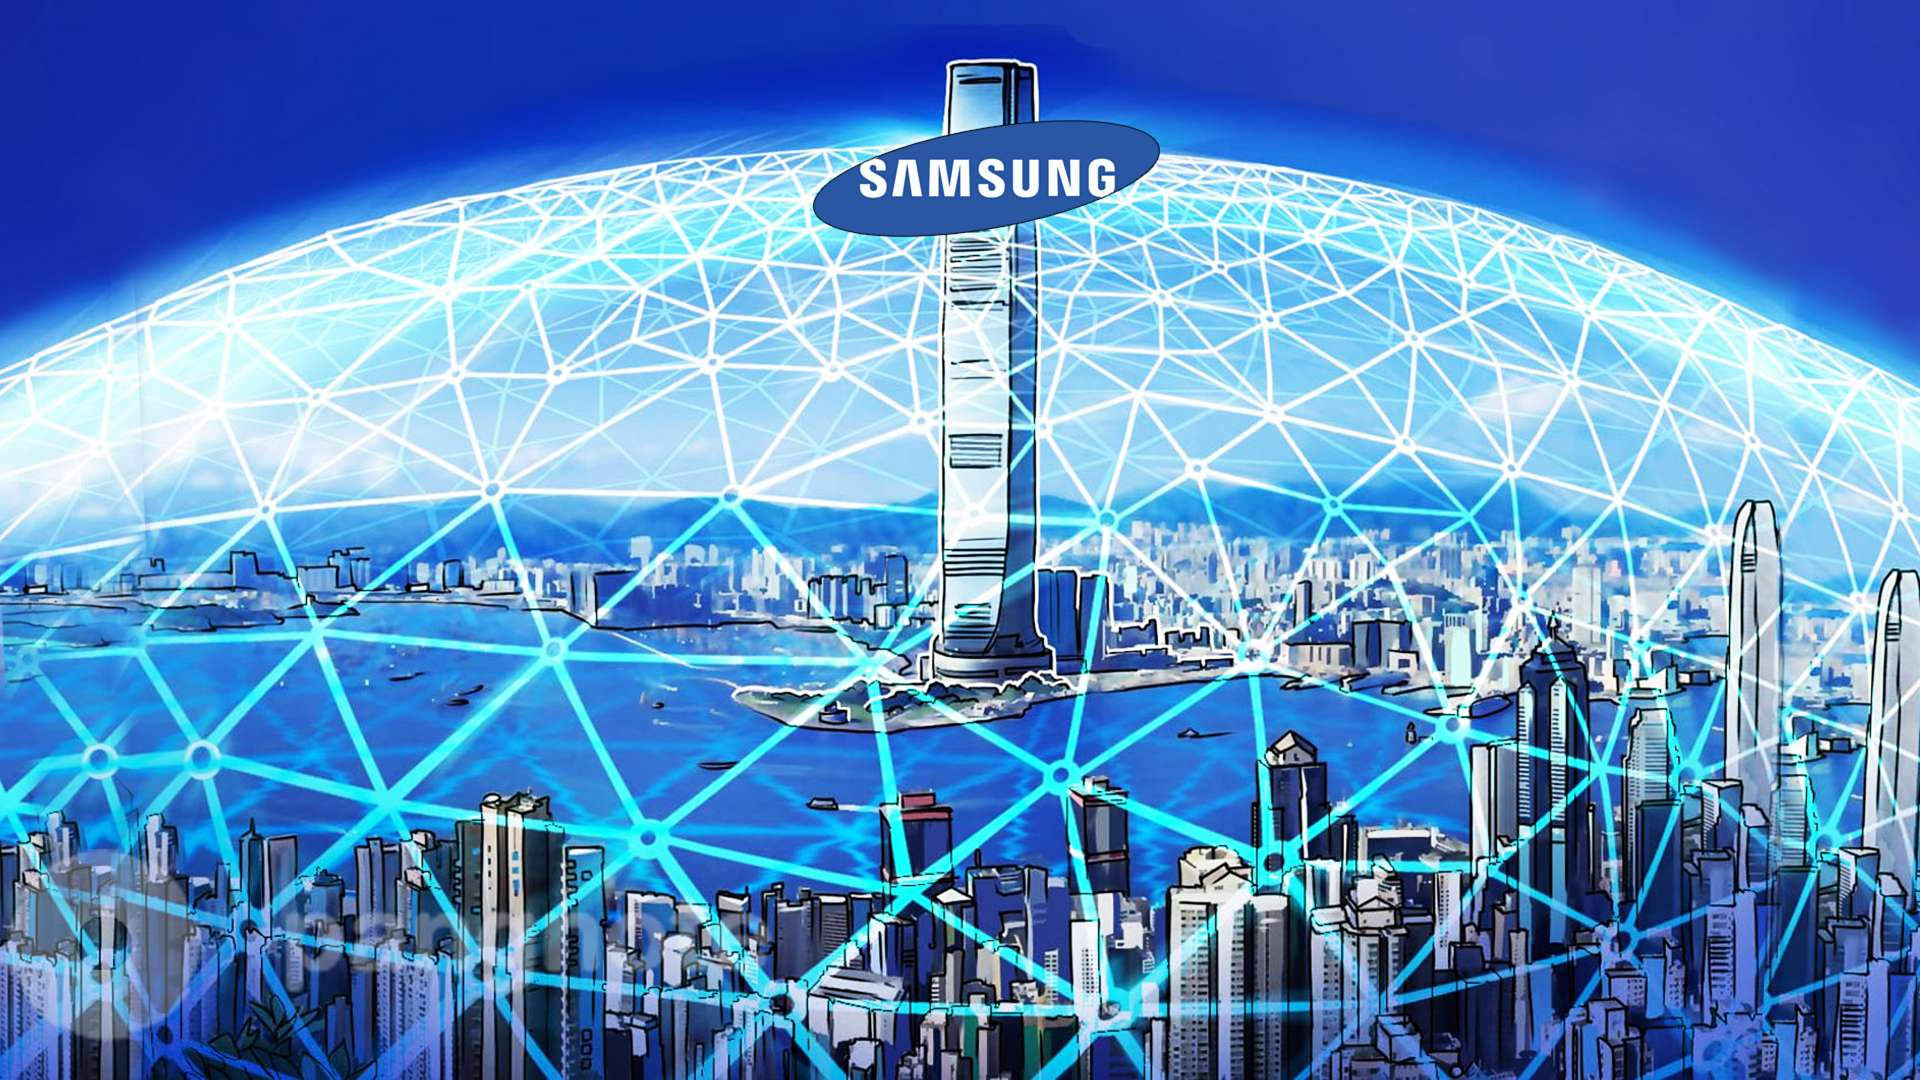 Samsung plans to become one of the telecommunications equipment manufacturers leaders